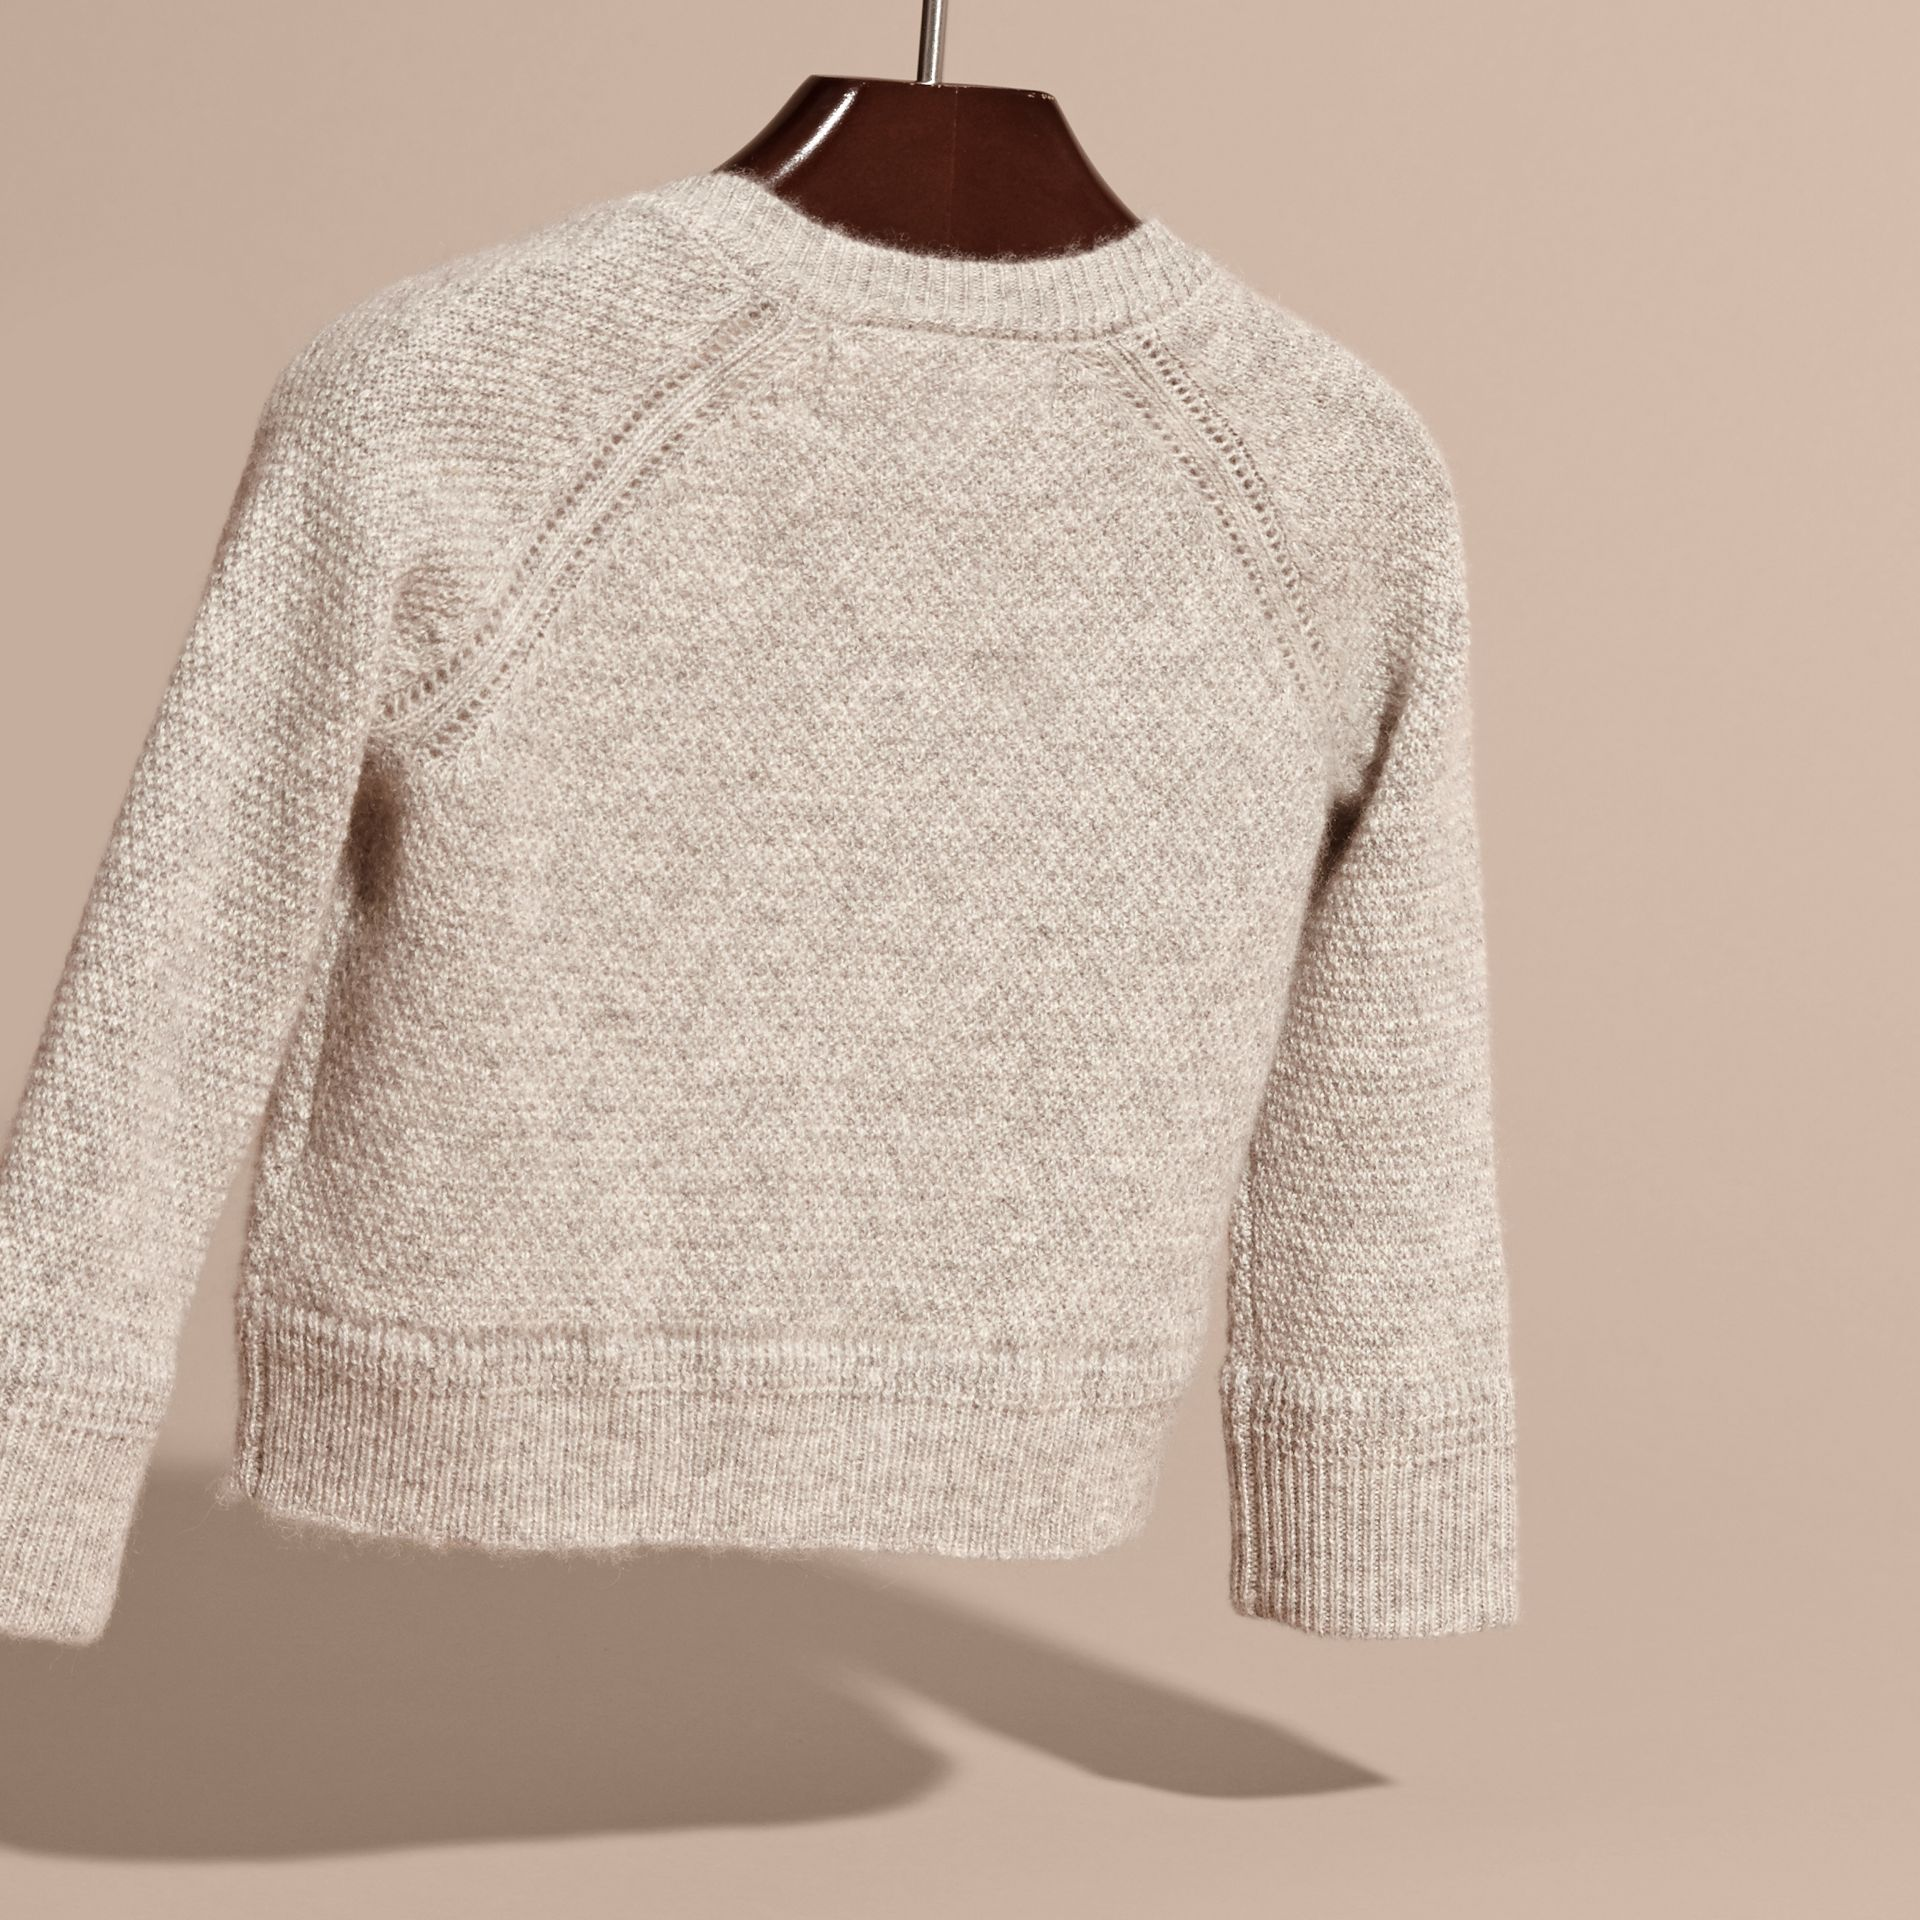 Textured Knit Cashmere Cardigan in Light Grey Melange | Burberry United Kingdom - gallery image 4